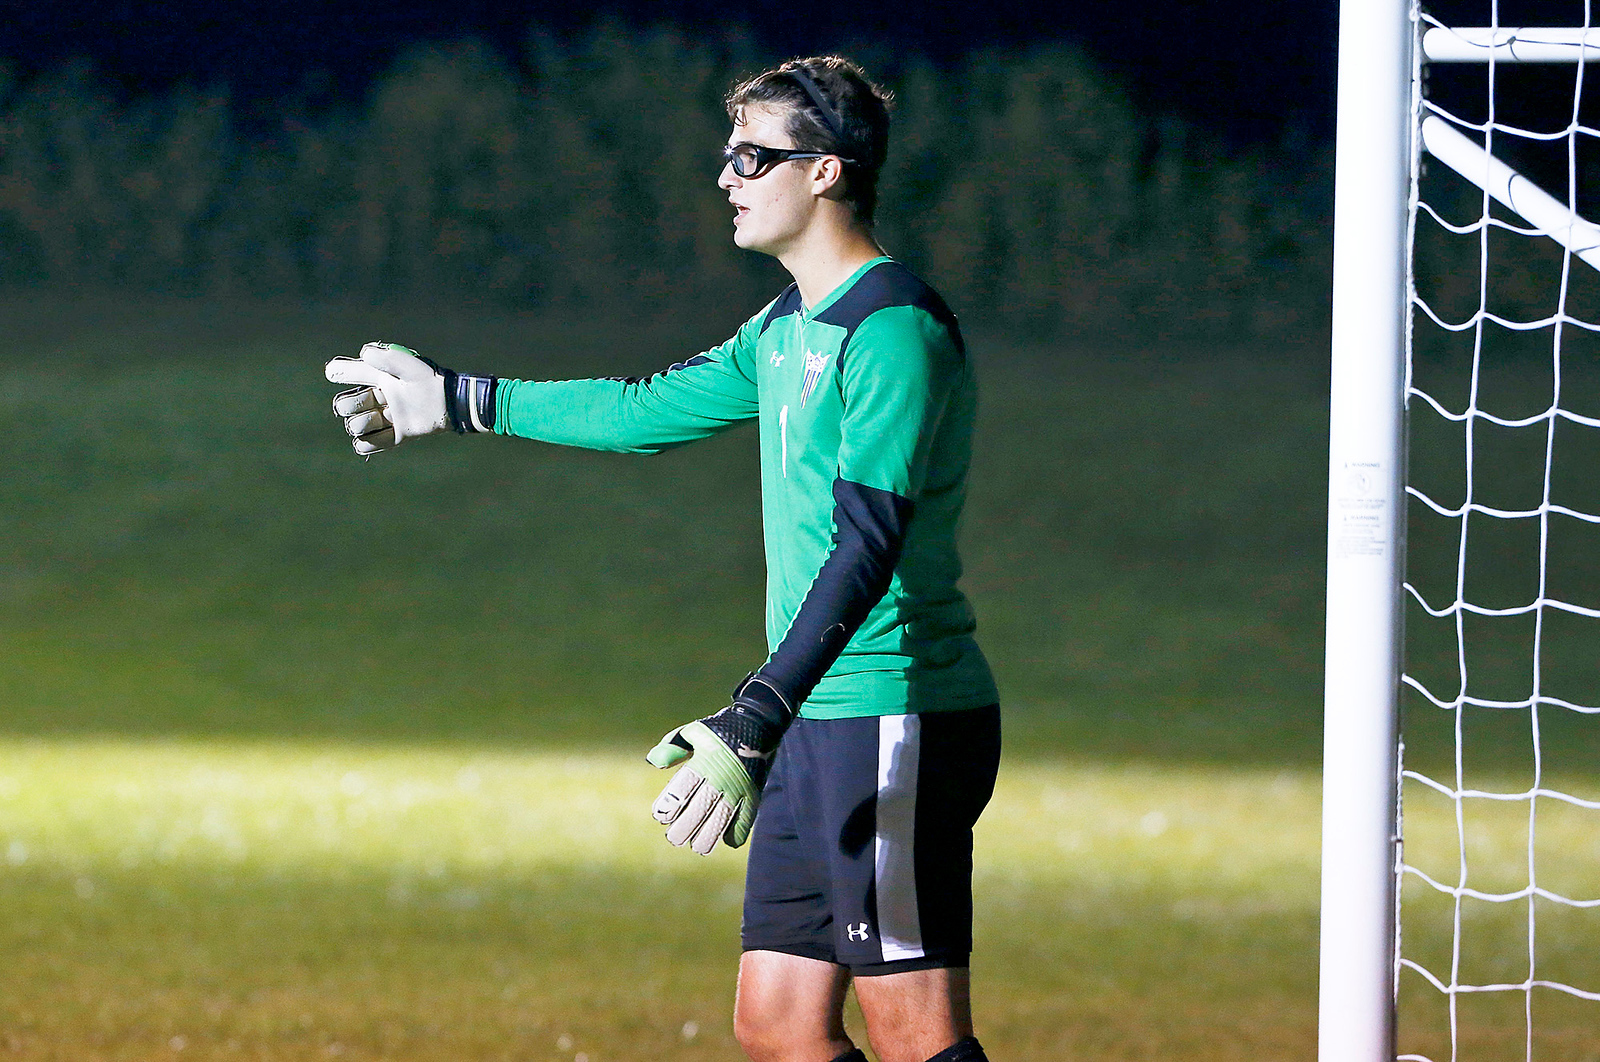 John Konstantaras - for Shaw Media Goalie Nicholas Craun (1) from Johnsburg during the second half of their game against Harvard on Tuesday, September 19, 2017 in Harvard, Illinois. The Hornets defeated the Skyhawks 1-0.